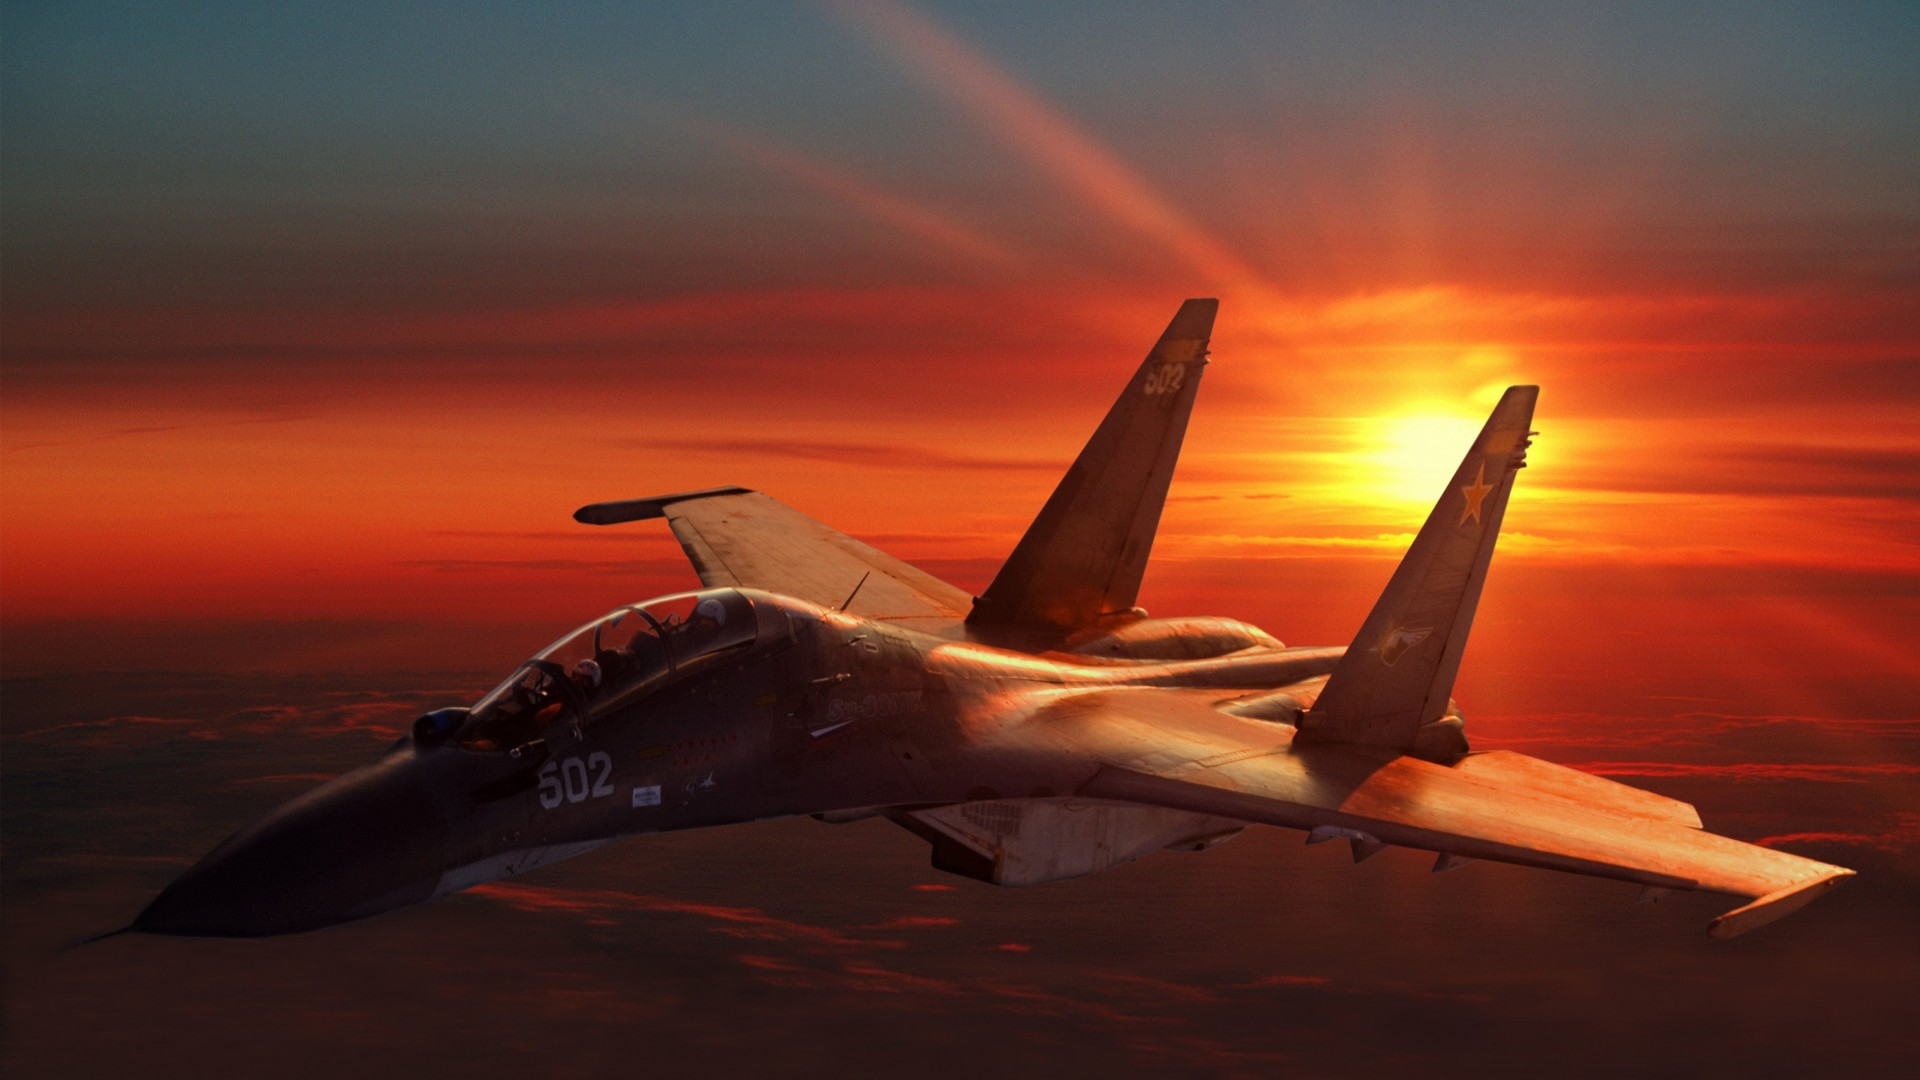 Wallpaper Su-30, Sukhoi, Flanker-C, fighter, aircraft, Russian Air Force, Russia, sunset, Military #1689All 4k wallpapers sorted and selected  by professional designers!